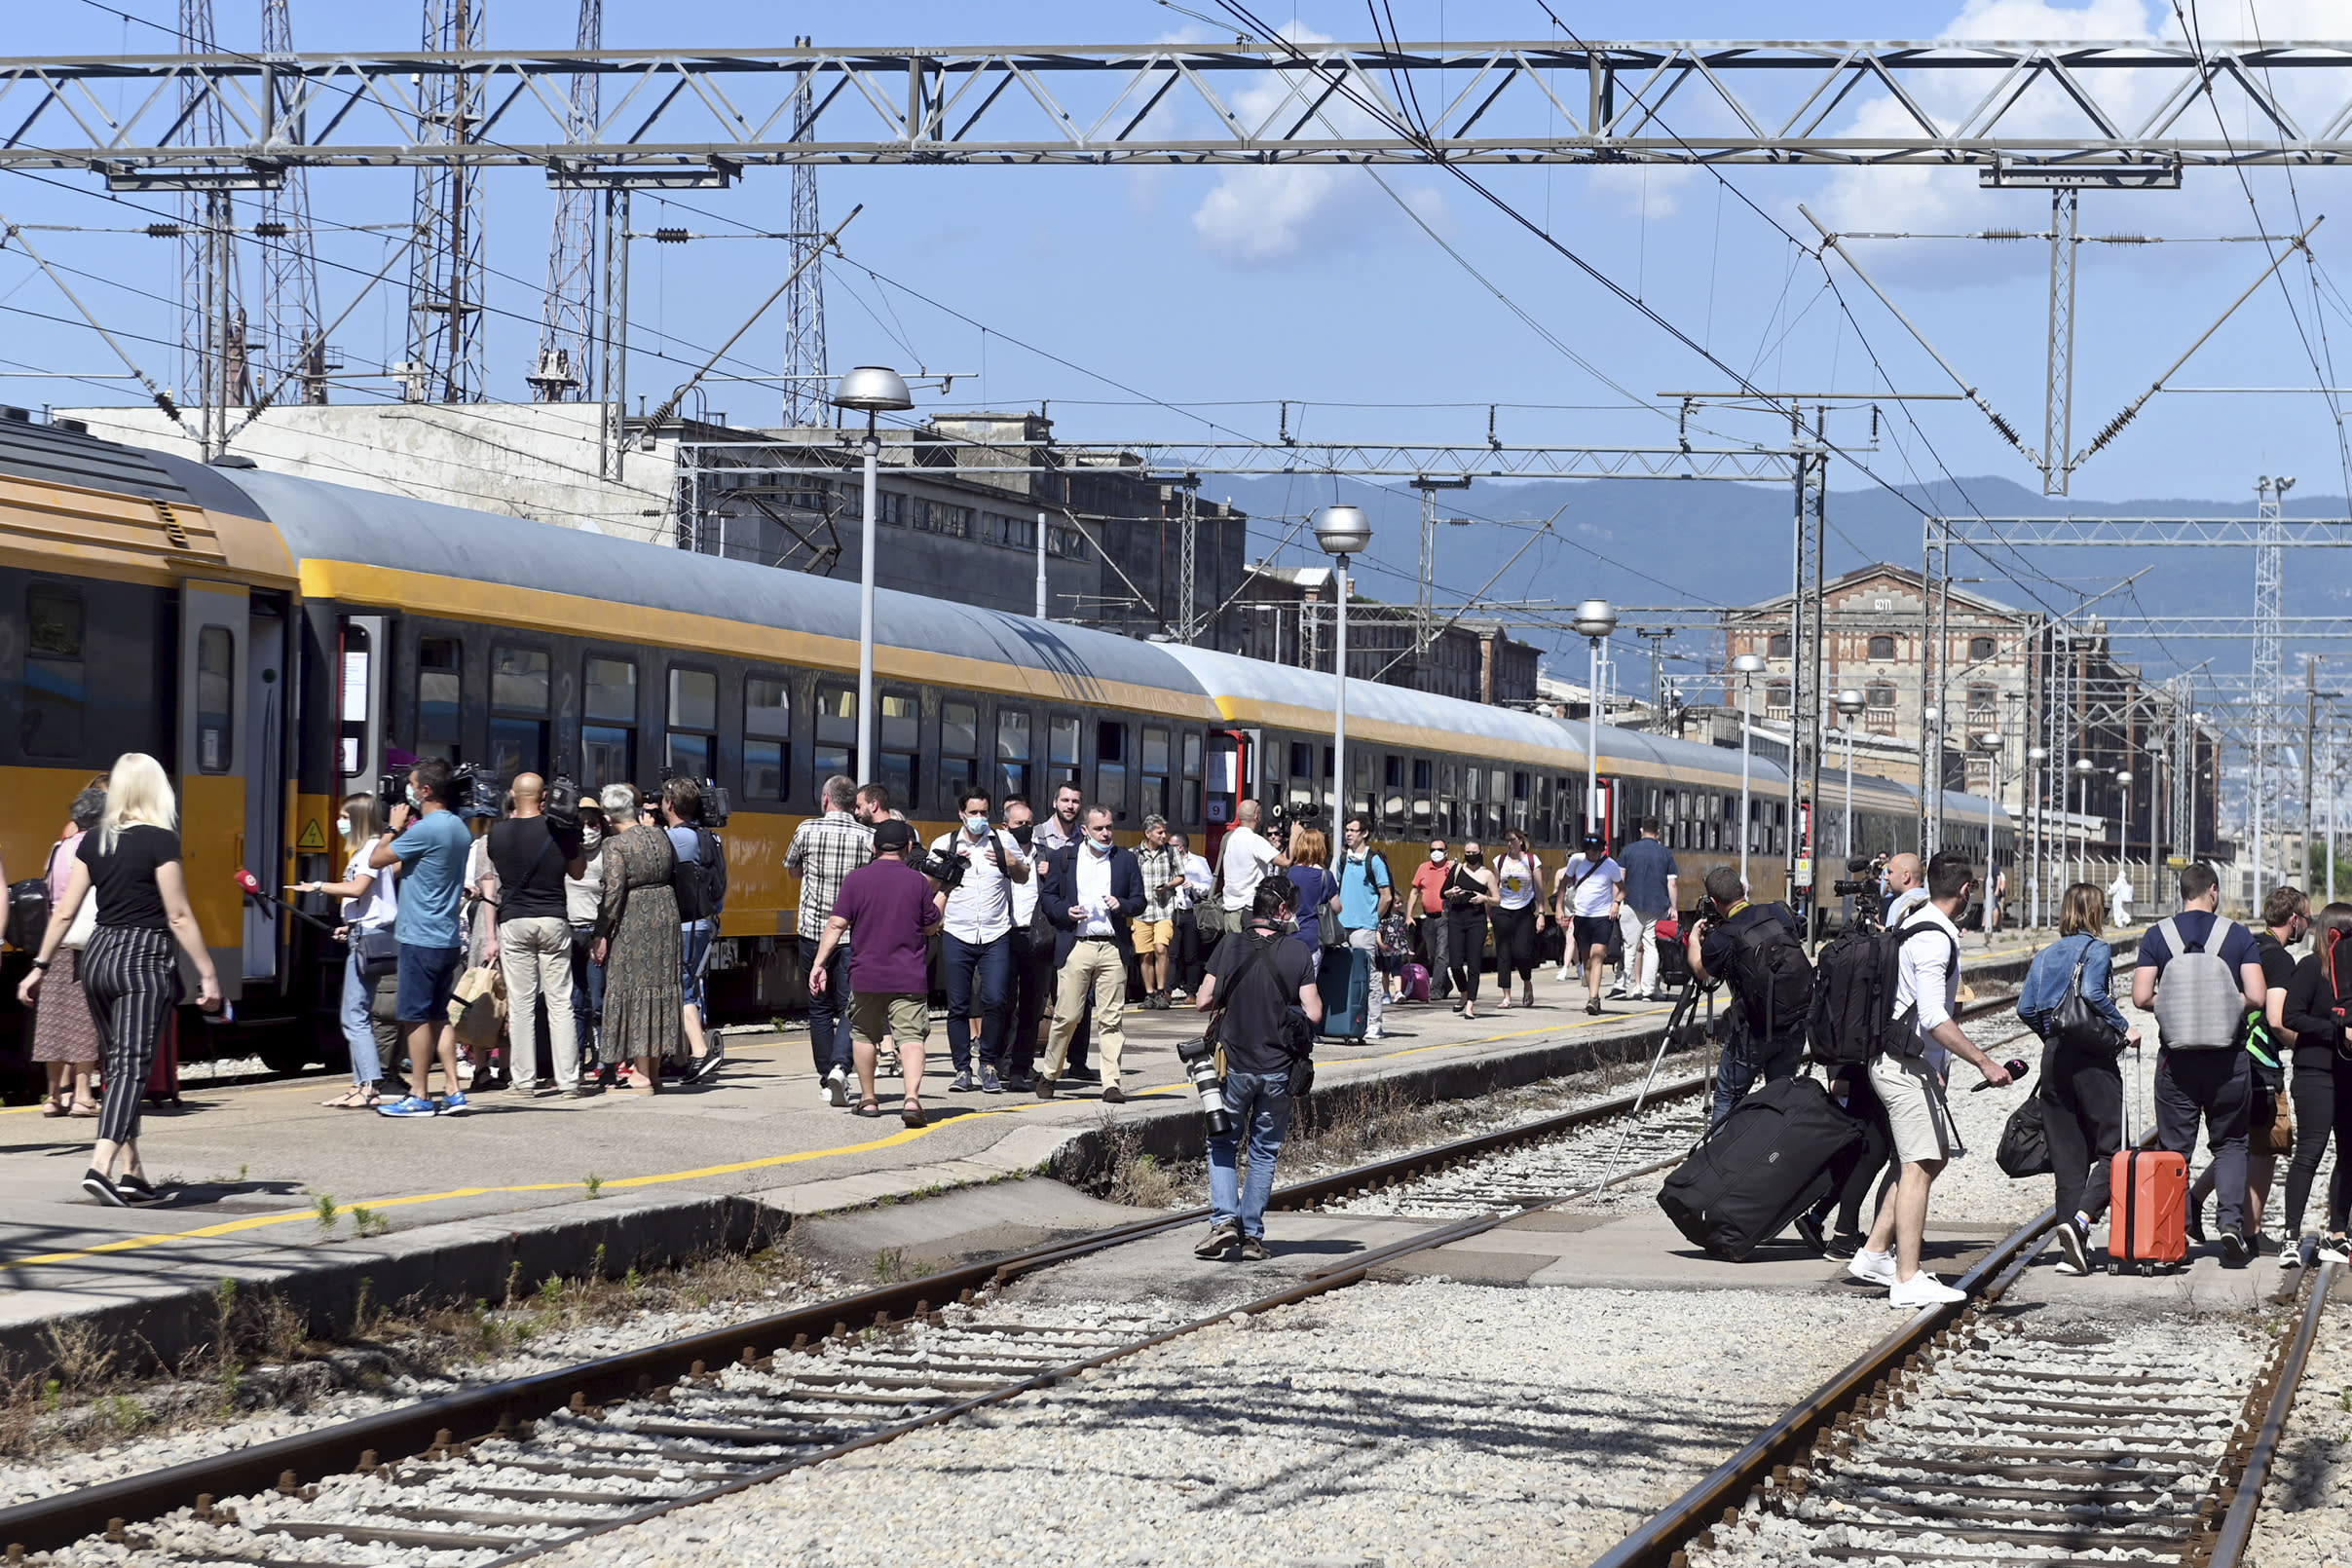 Passengers disembark from a train that arrived from the Czech Republic in Rijeka, Croatia, Wednesday, July 1, 2020. A train carrying some 500 tourists from the Czech Republic has arrived to Croatia as the country seeks to attract visitors after easing lockdown measures against the new coronavirus.(AP Photo)